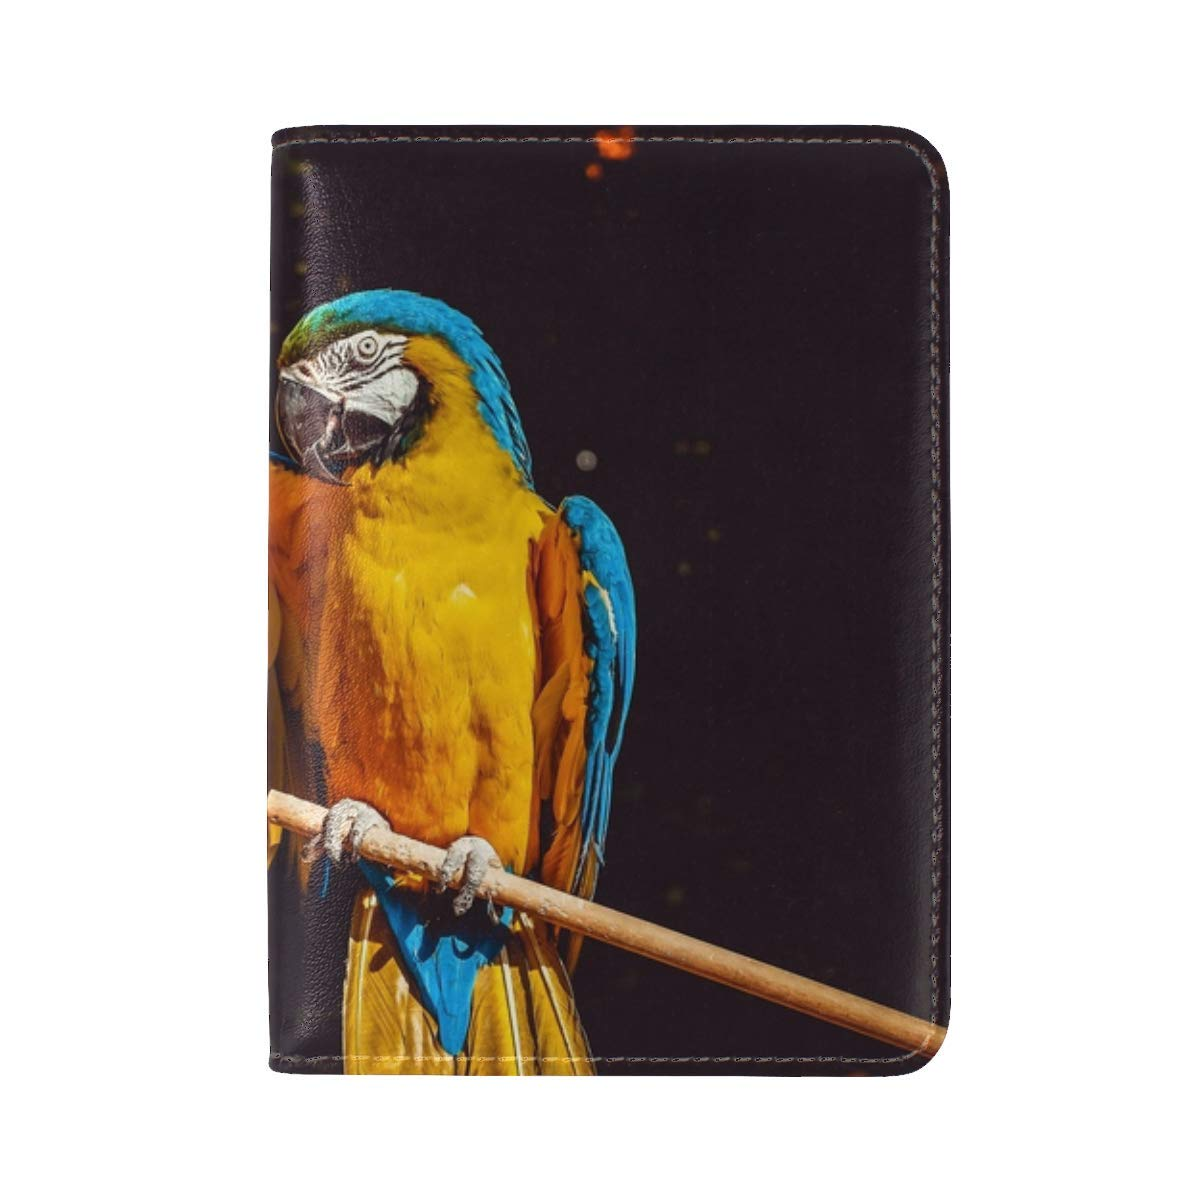 Parrot Macaw Wing Leather Passport Holder Cover Case Travel One Pocket